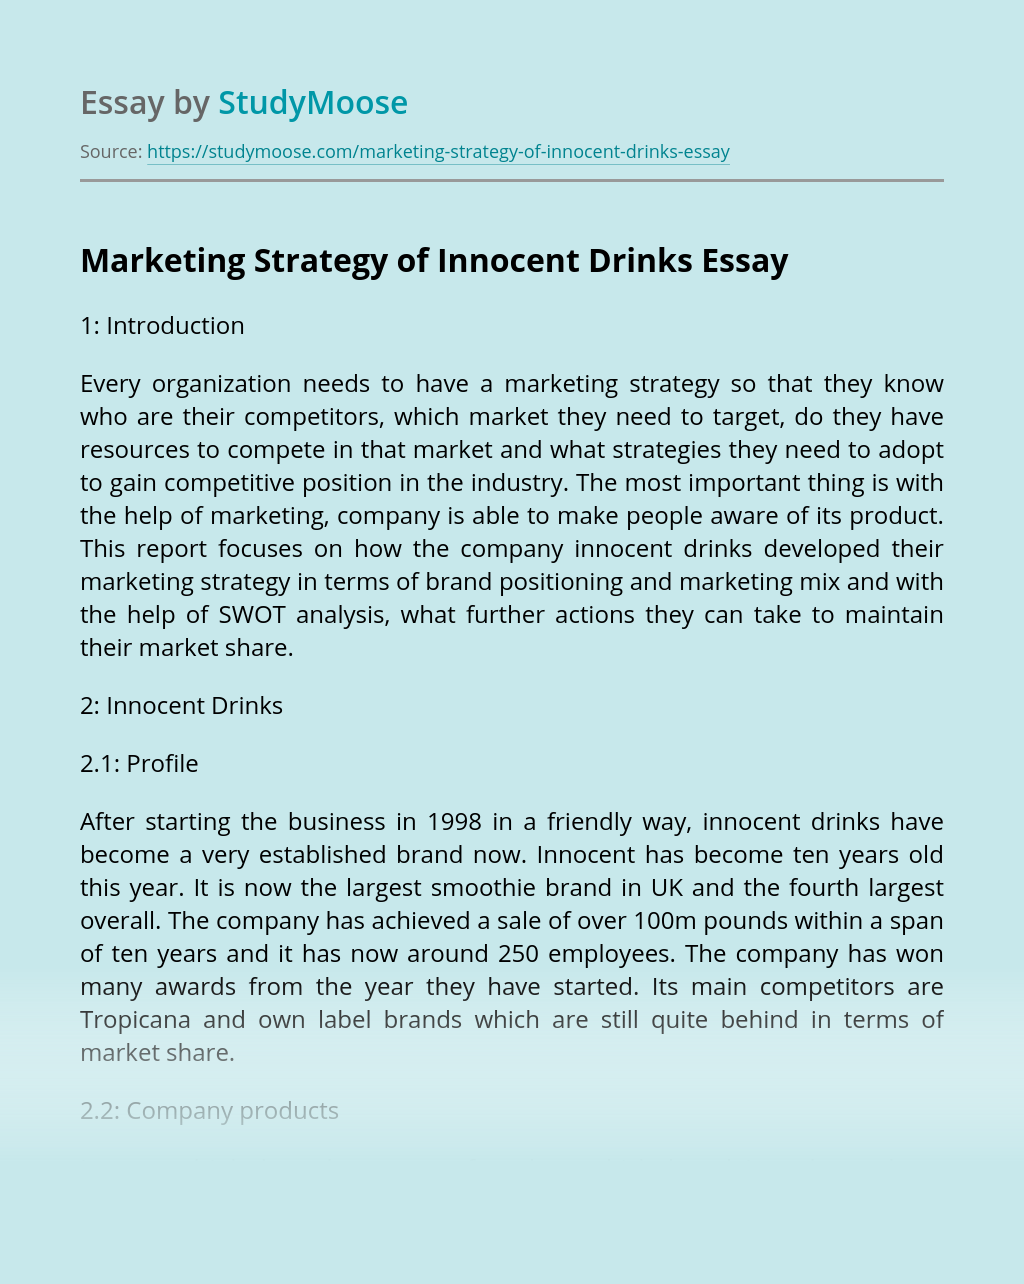 Marketing Strategy of Innocent Drinks